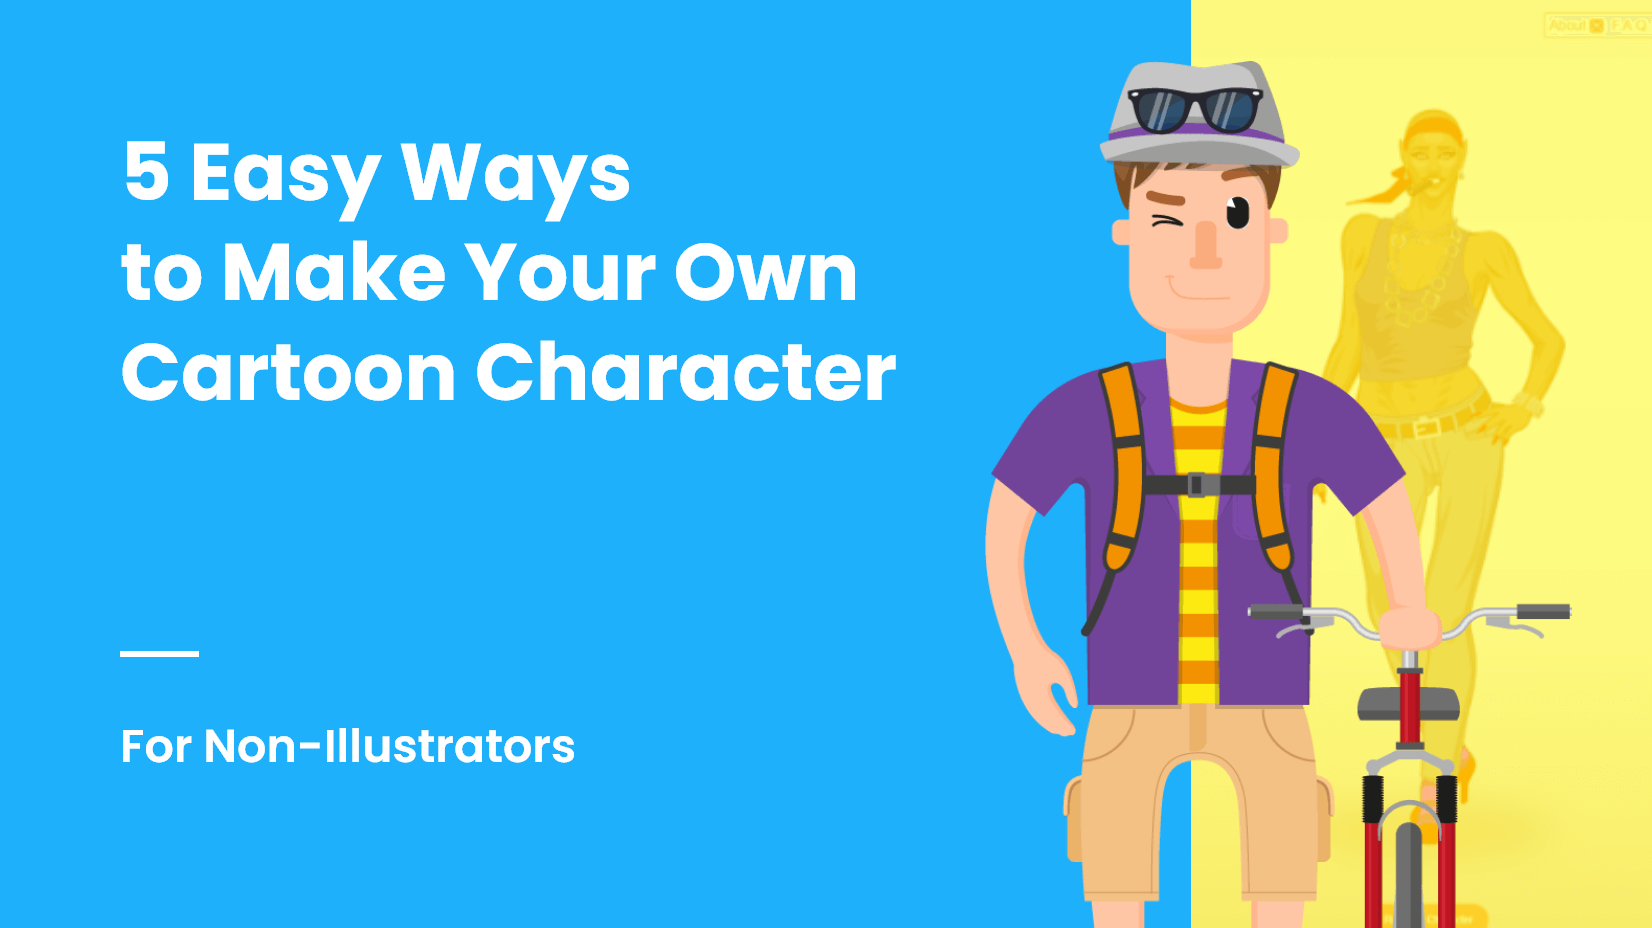 5 Ways to Make Your Own Cartoon Character